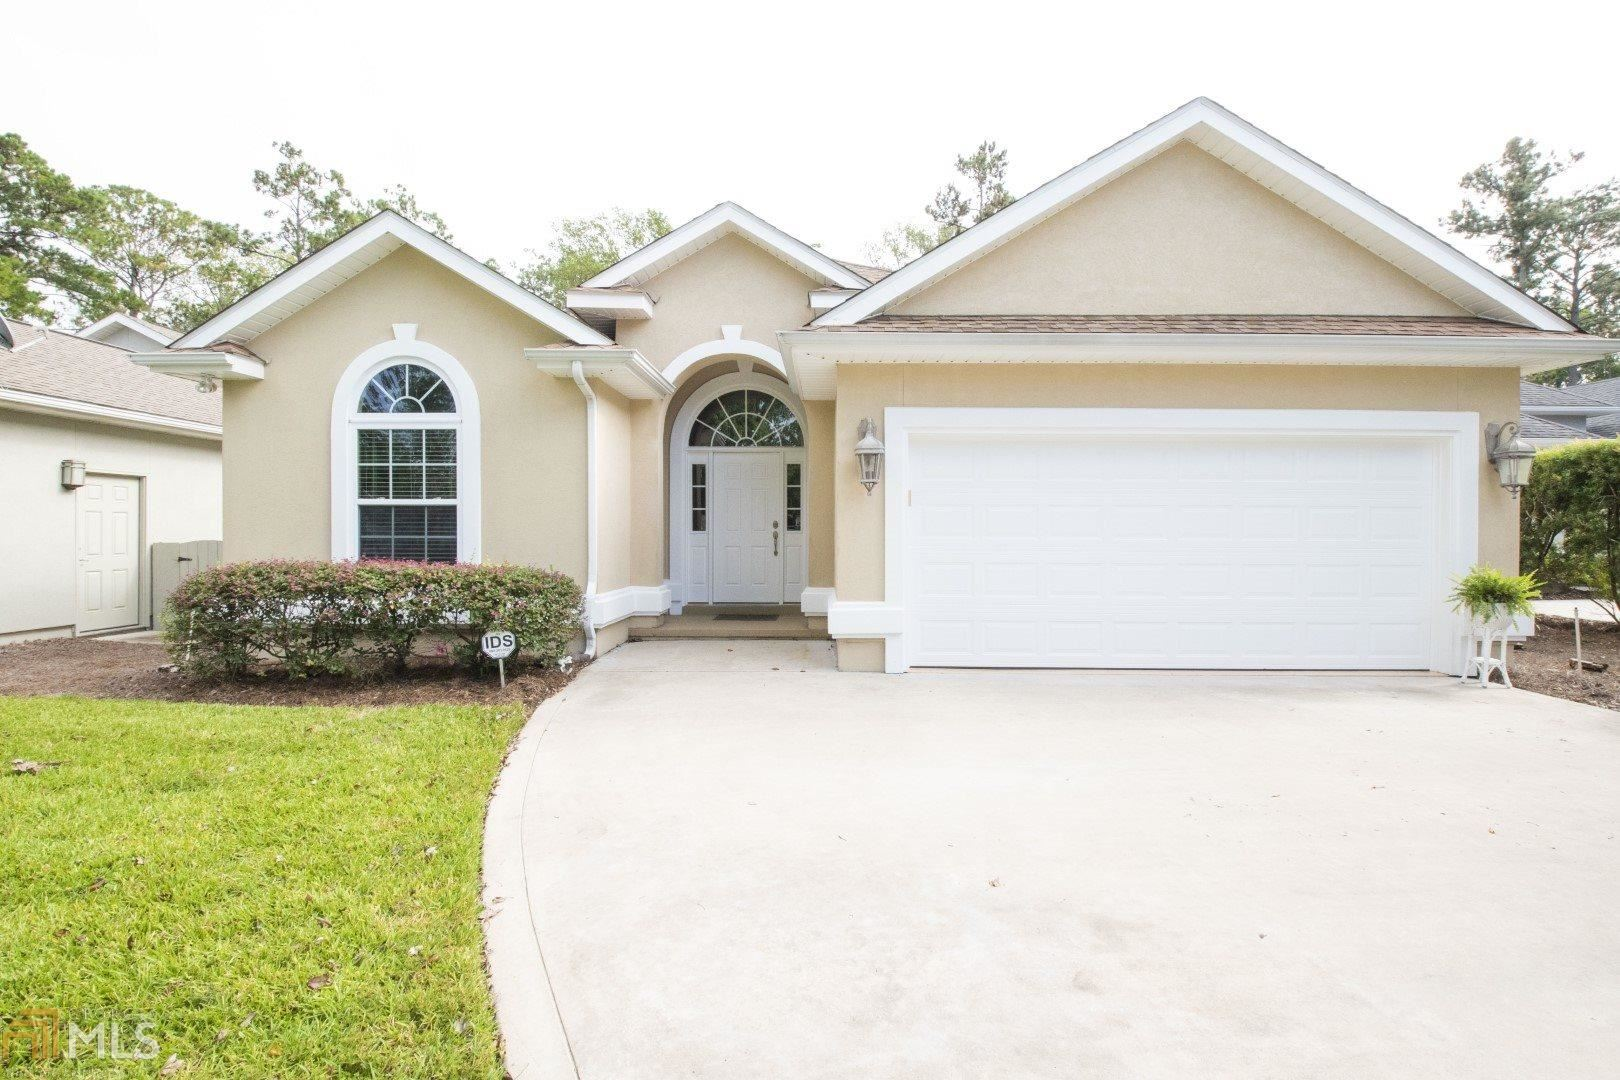 1615 Sandpiper Ct, Saint Marys, GA 31558 - MLS#: 8877333